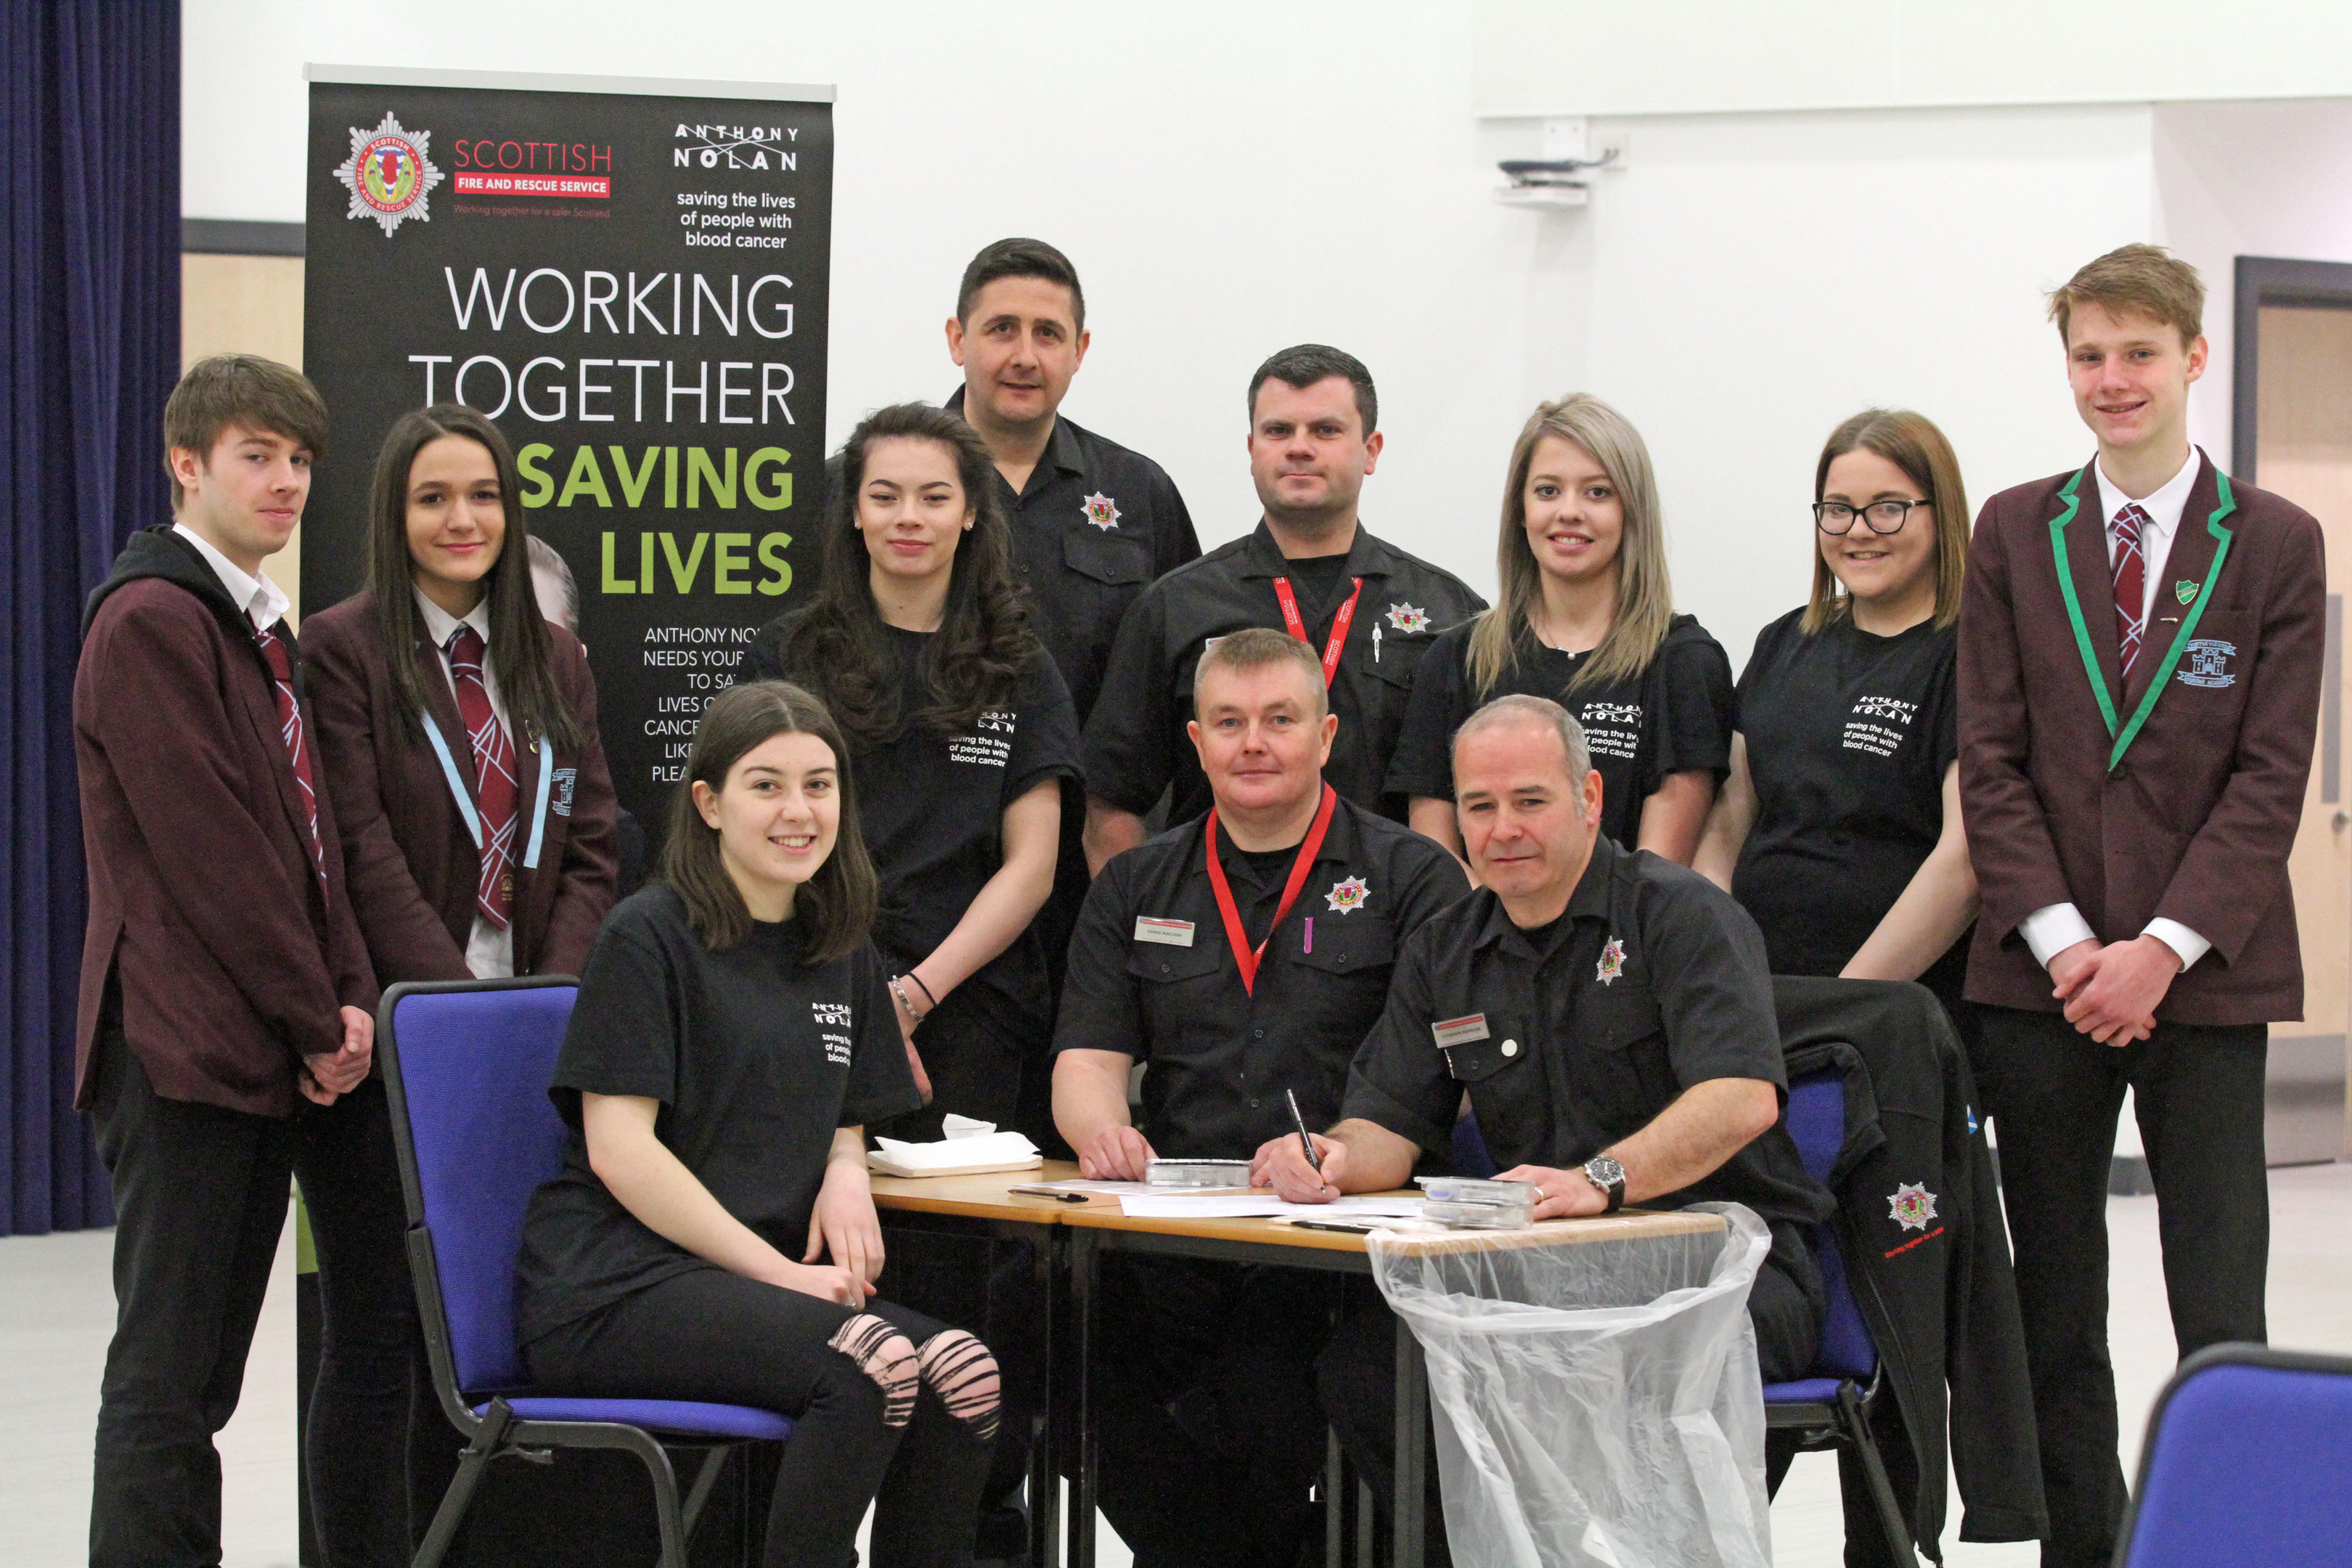 Academy champions and SFRS personnel involved in the Forfar event